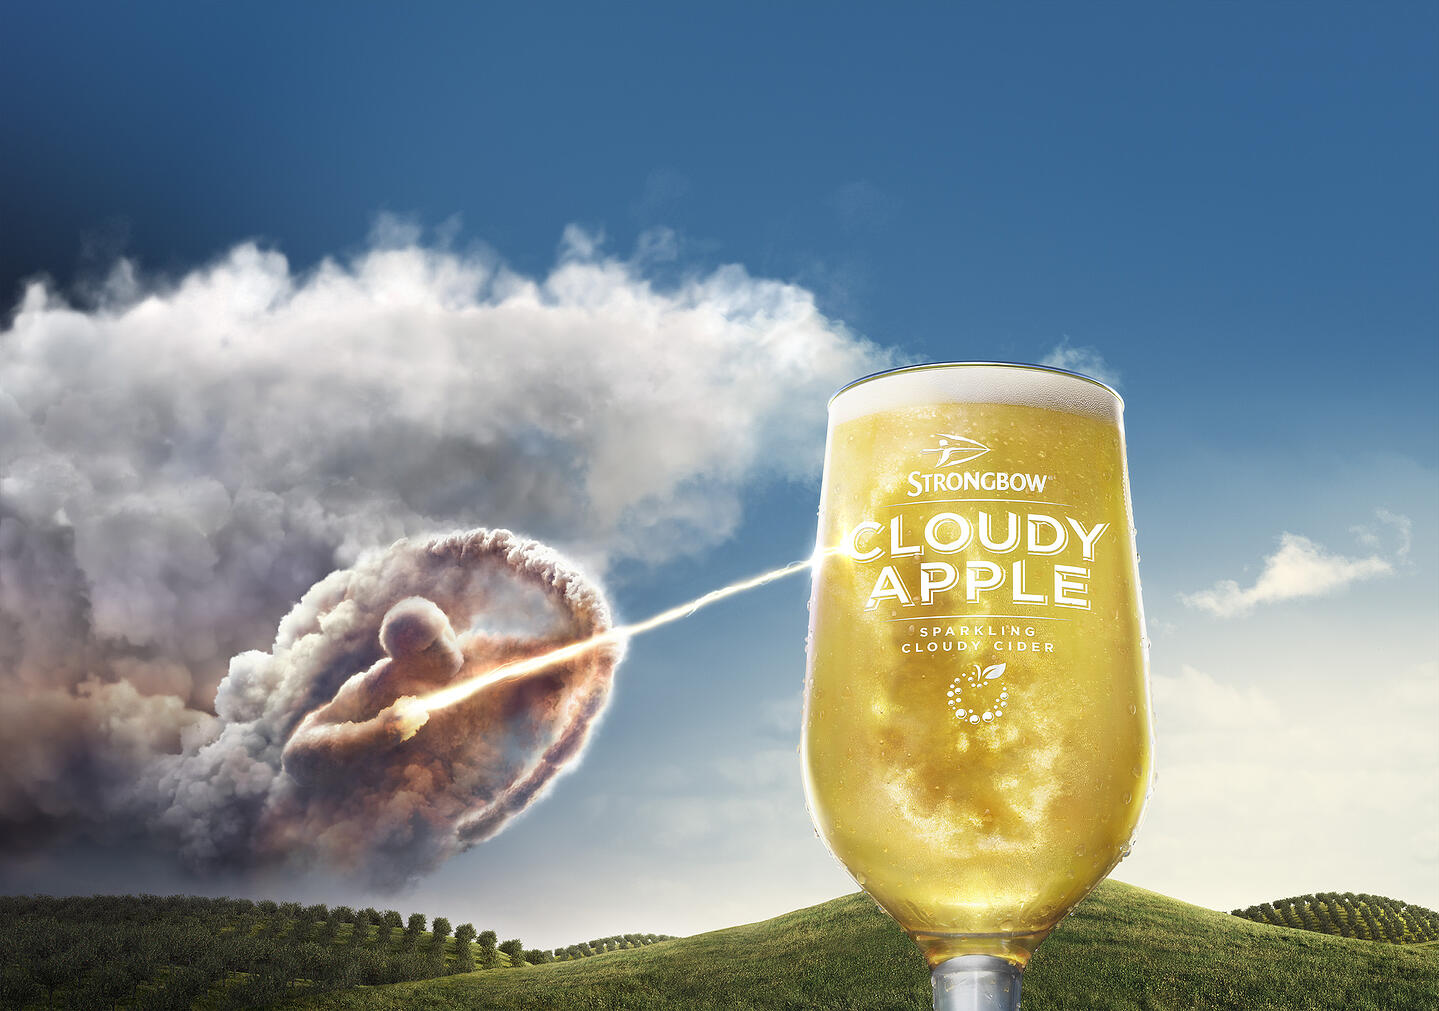 Strongbow Cloudy Apple final